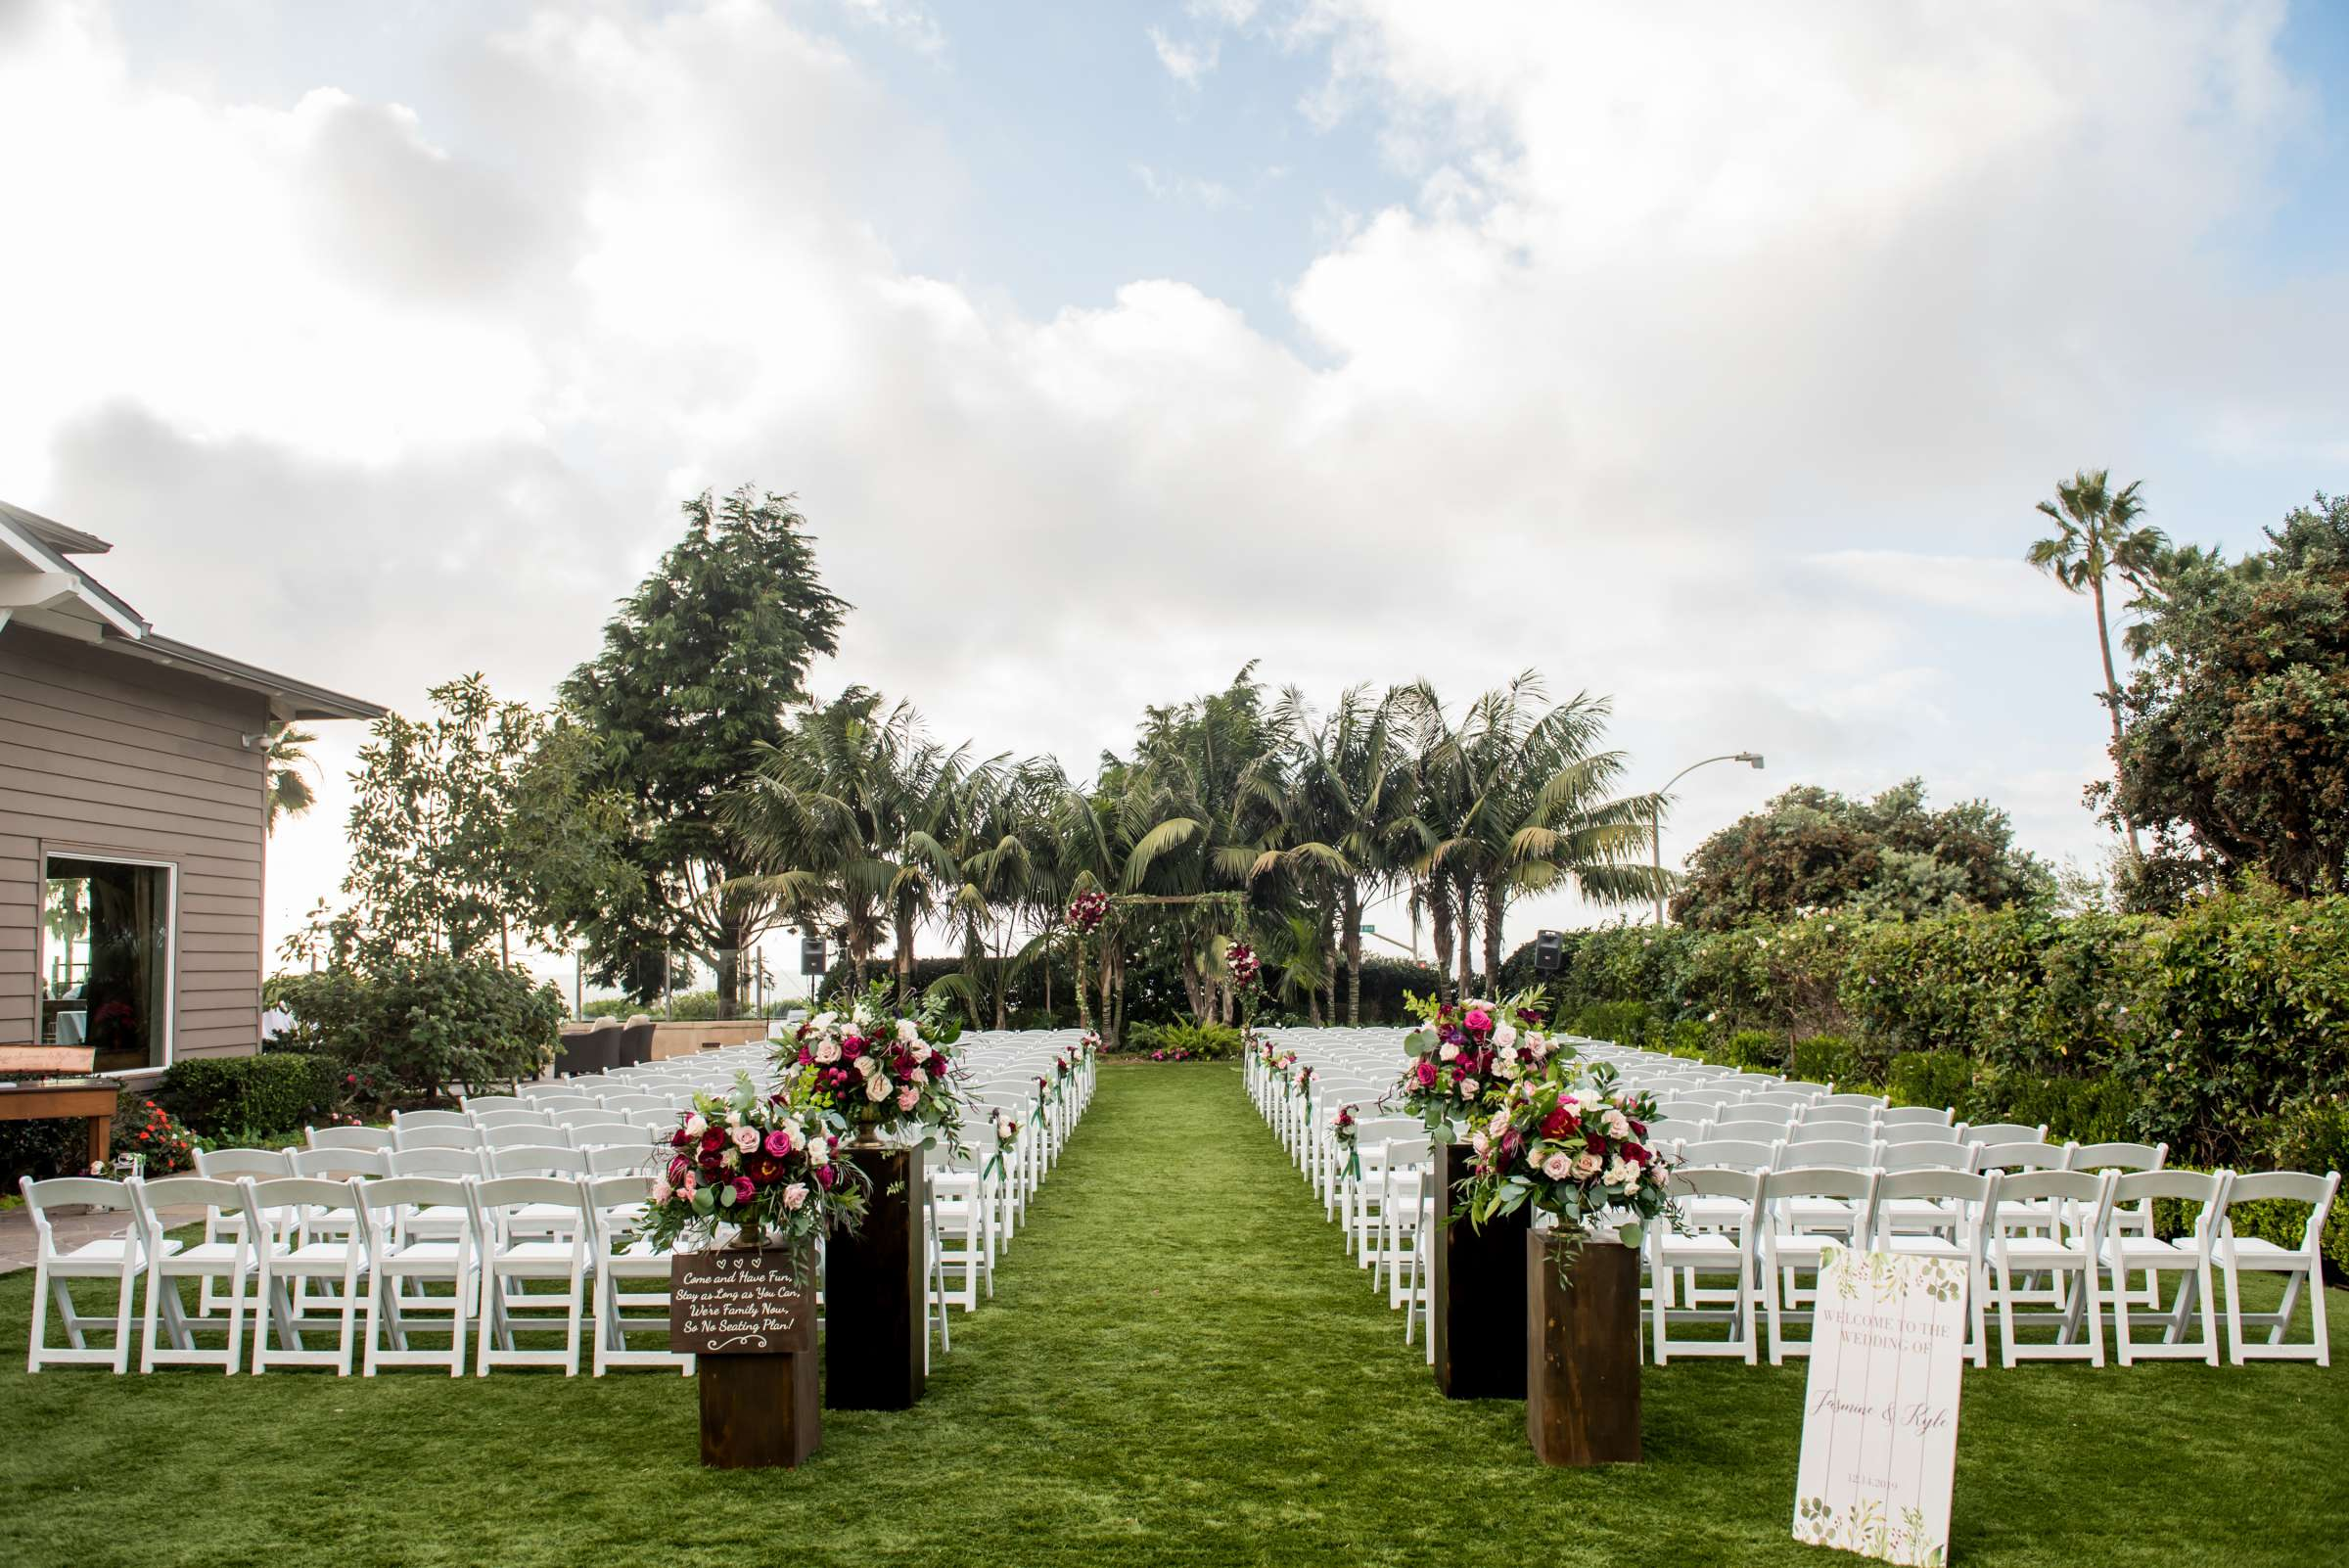 Cape Rey Carlsbad, A Hilton Resort Wedding, Jasmine and Kyle Wedding Photo #226 by True Photography